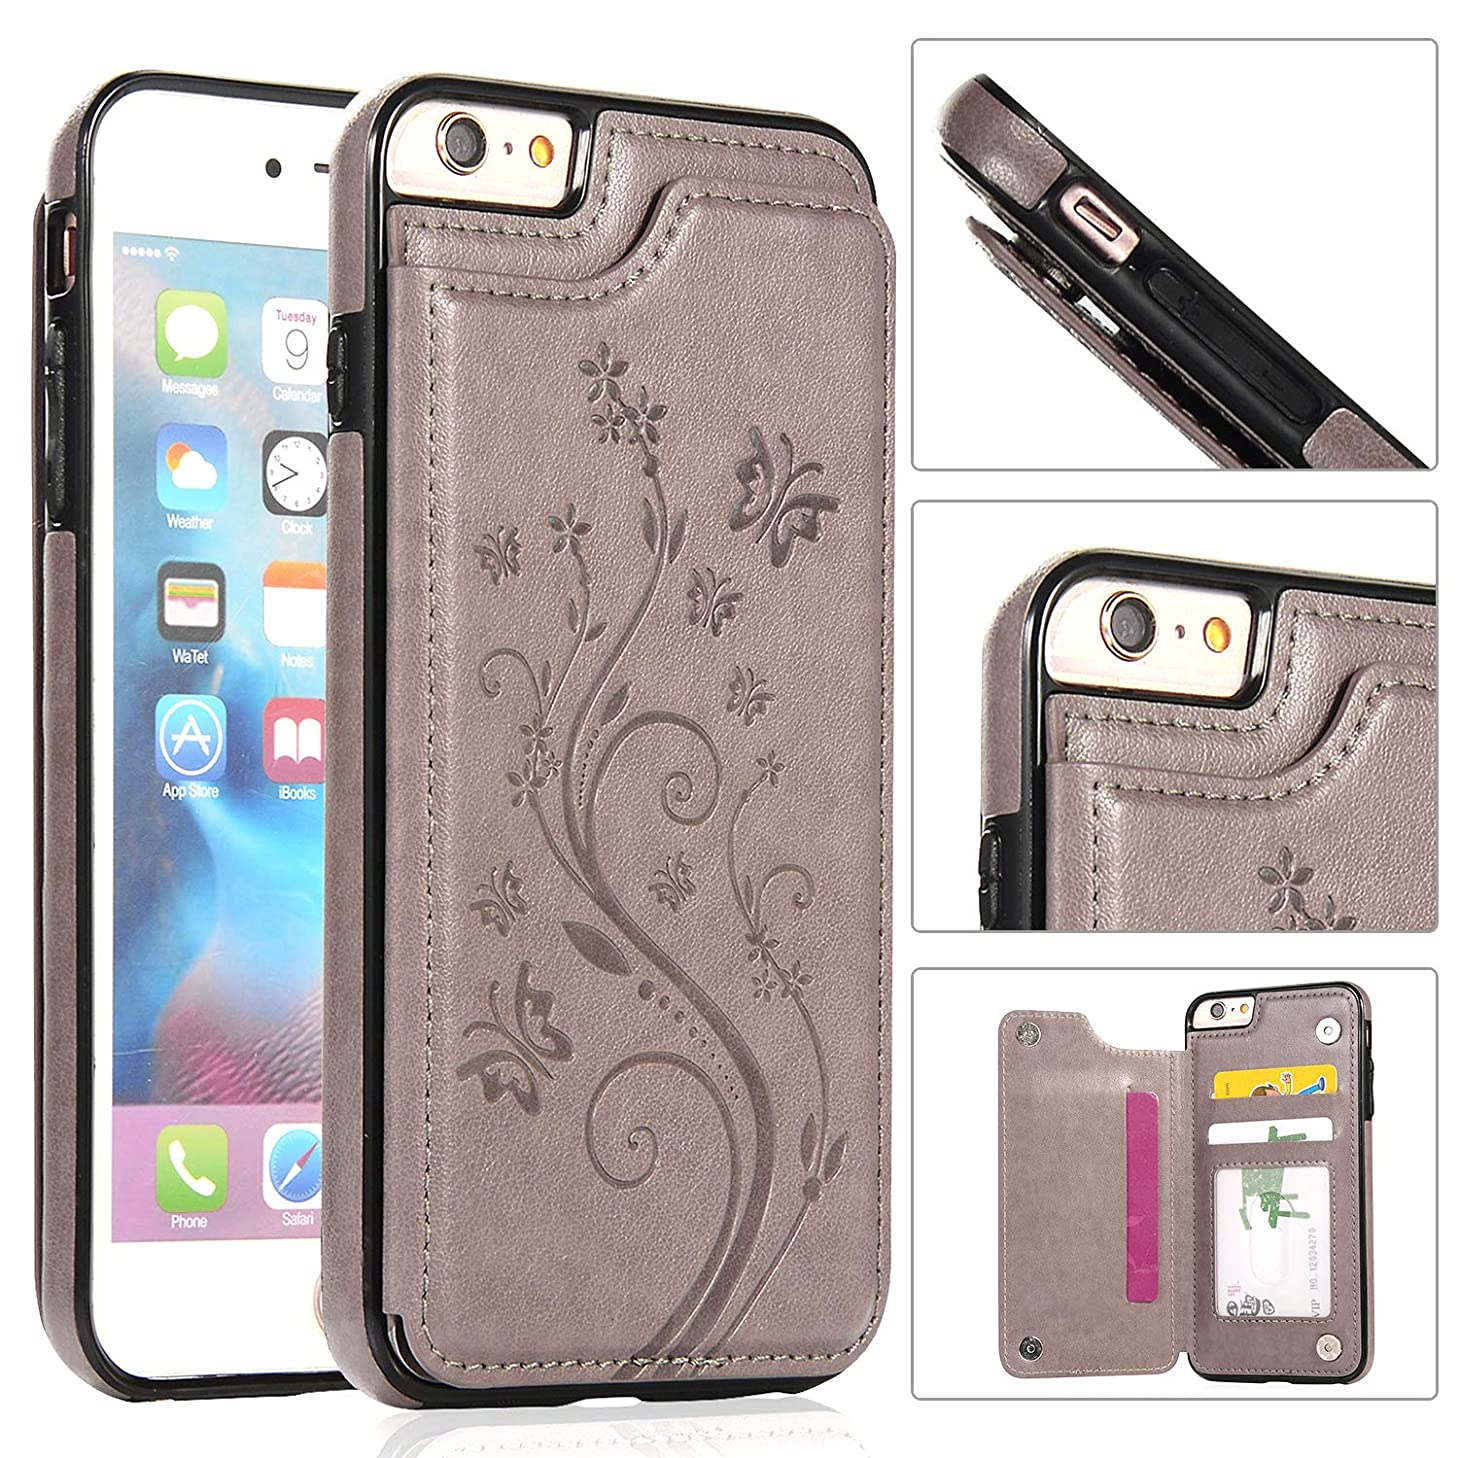 iPhone 6s Wallet Case with Card Holder,iPhone 6 Case [Butterfly Series] Wallet for Women Girls Men,i-Dawn Compatible with iPhone 6S Cute Case Slim Fit Premium Leather Cover with Stand,Durable -Grey